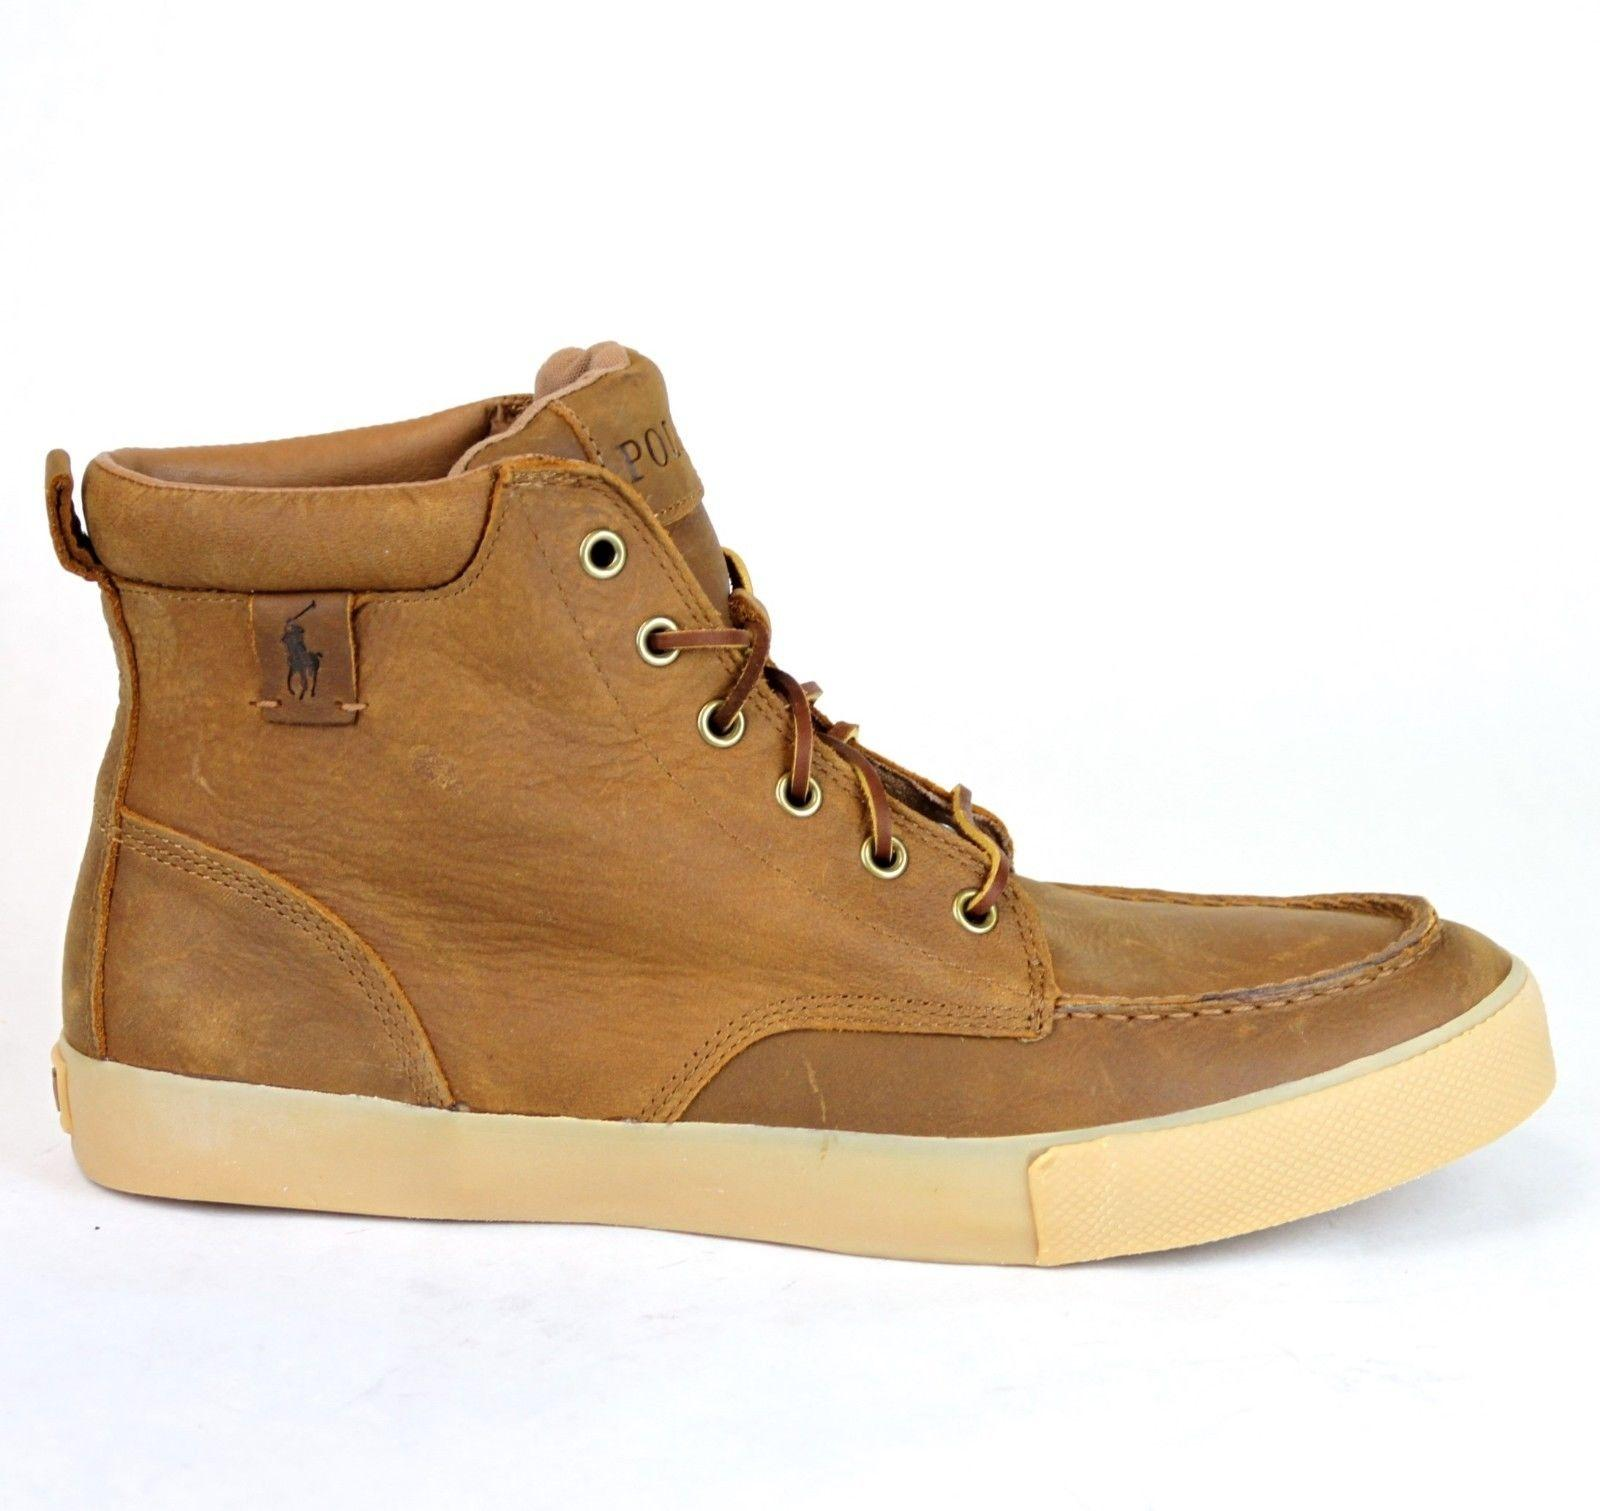 Polo Ralph Lauren Tan/Brown Tan/Brown Tedd Leather High Top Sneaker Us 7..5  Shoes - Tradesy